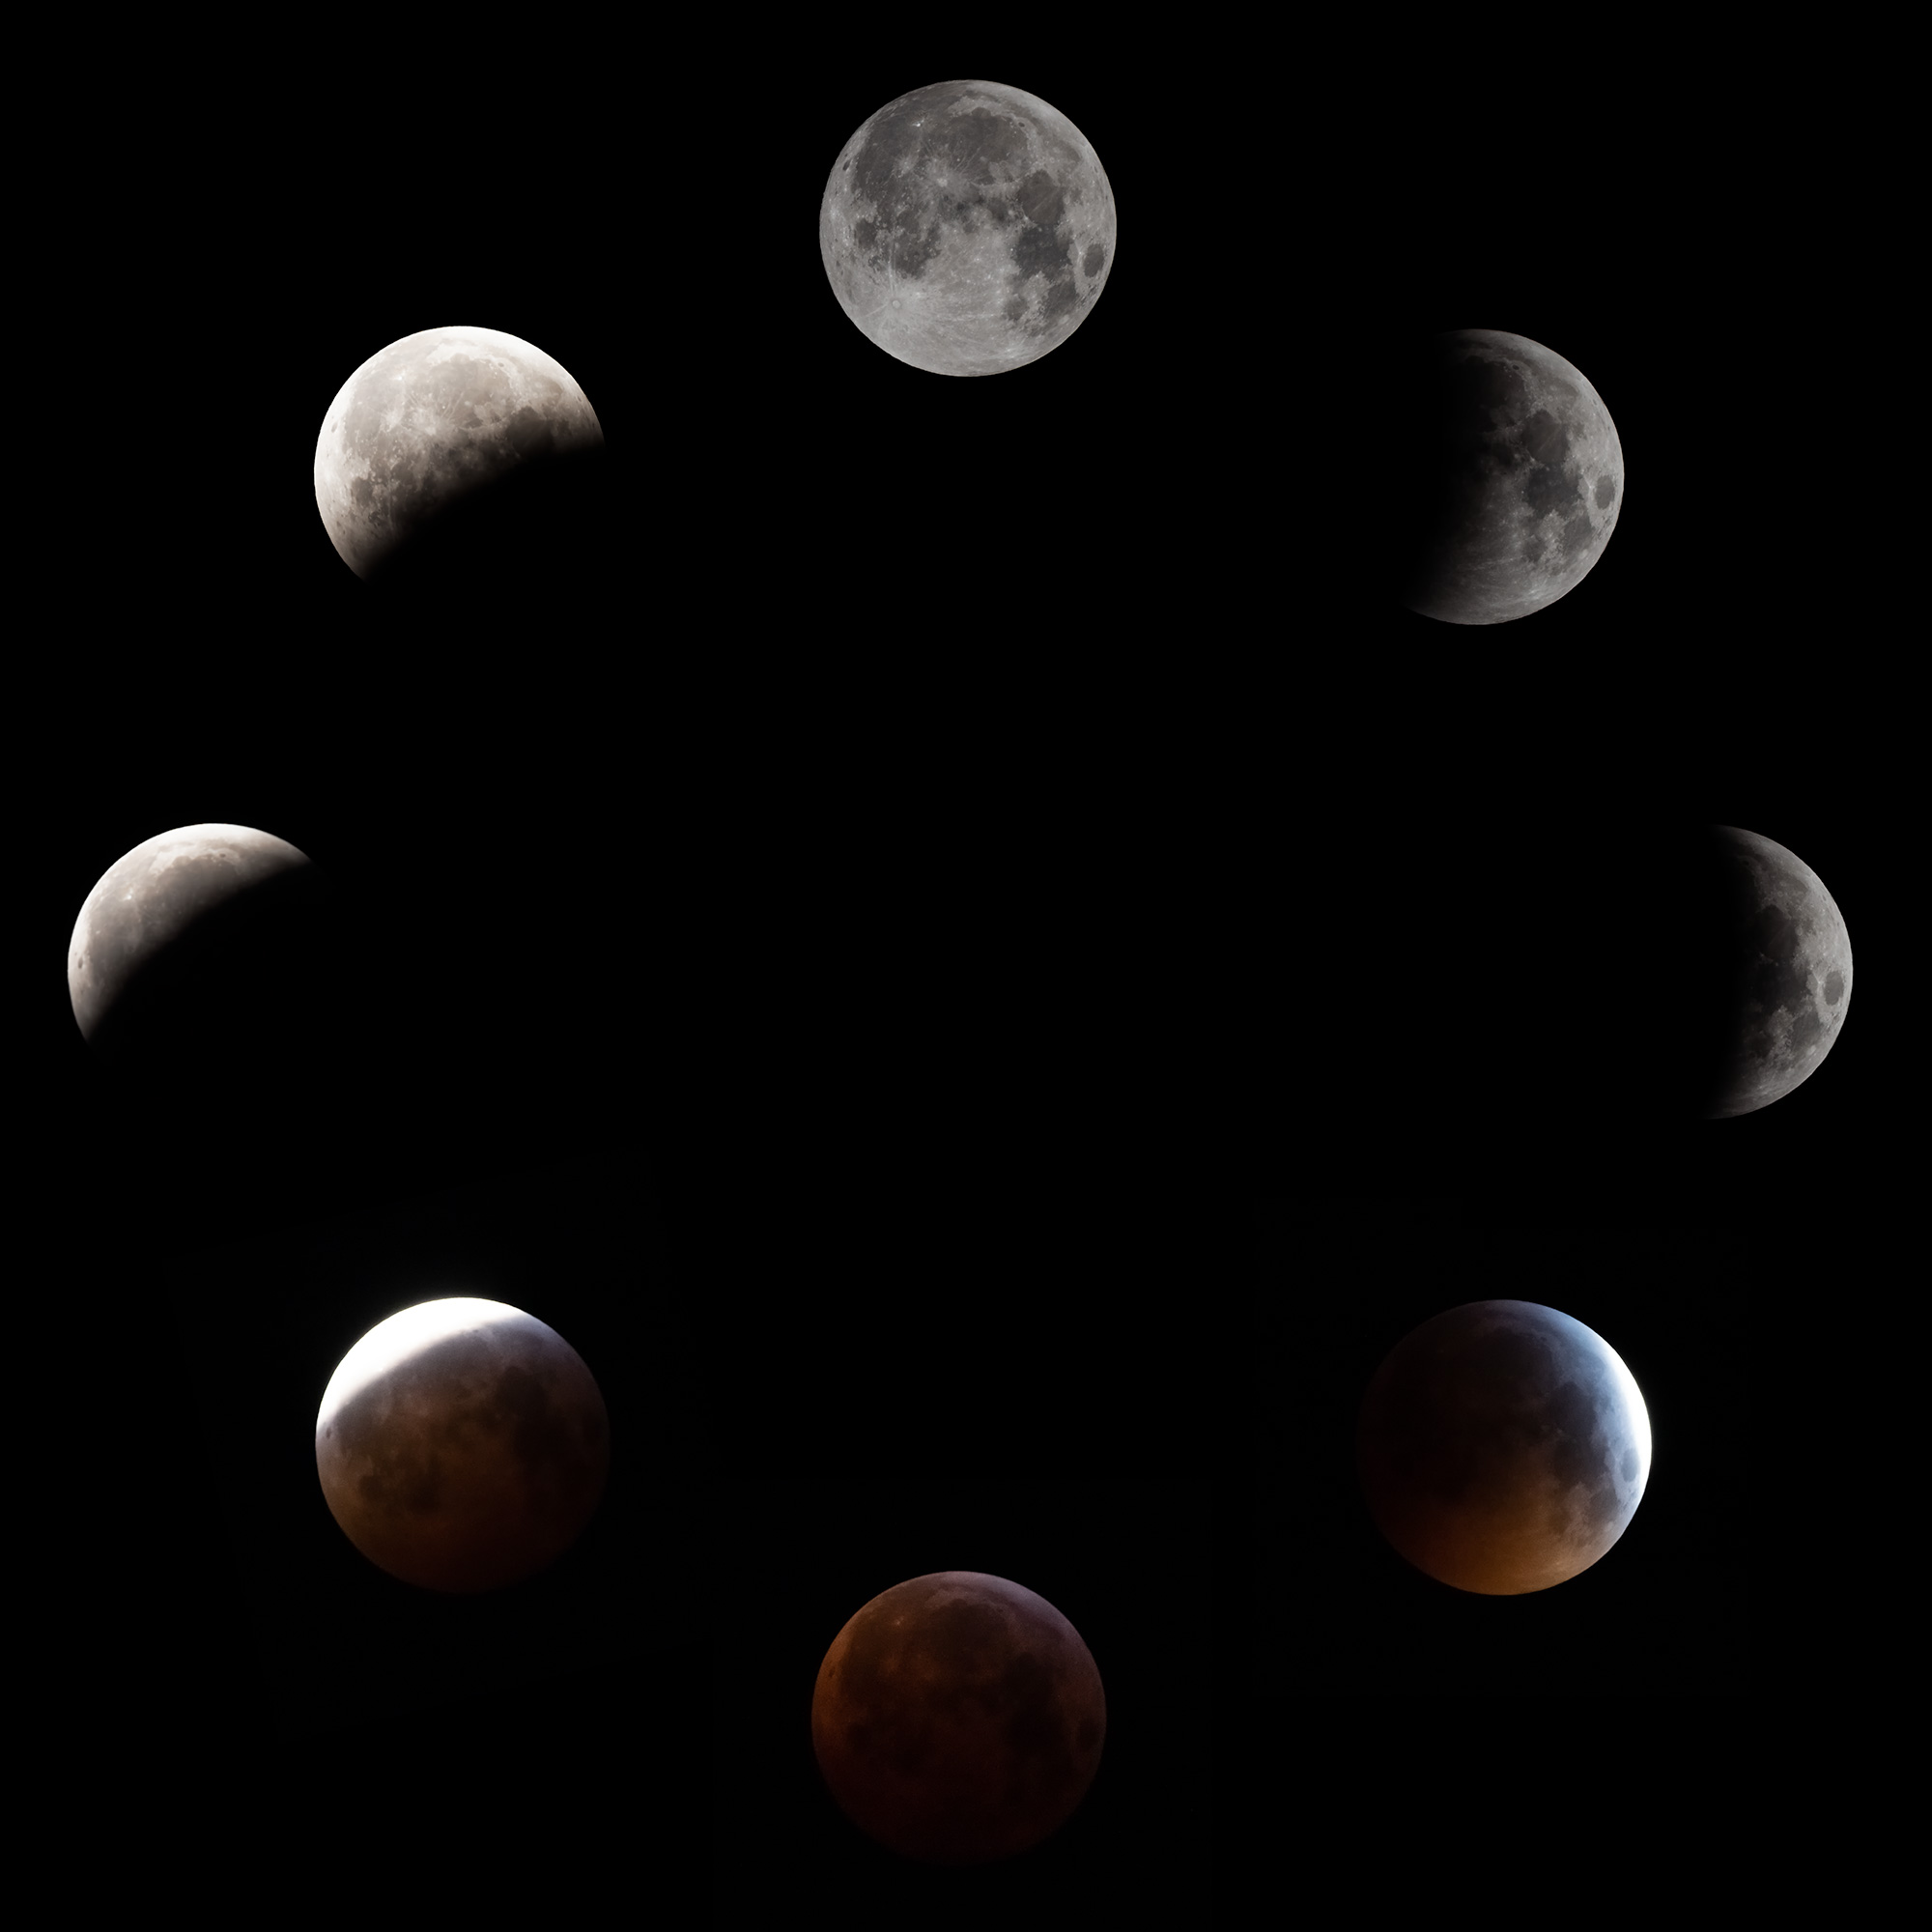 Phases of the eclipse of 2019-01-21, chronologically clockwise